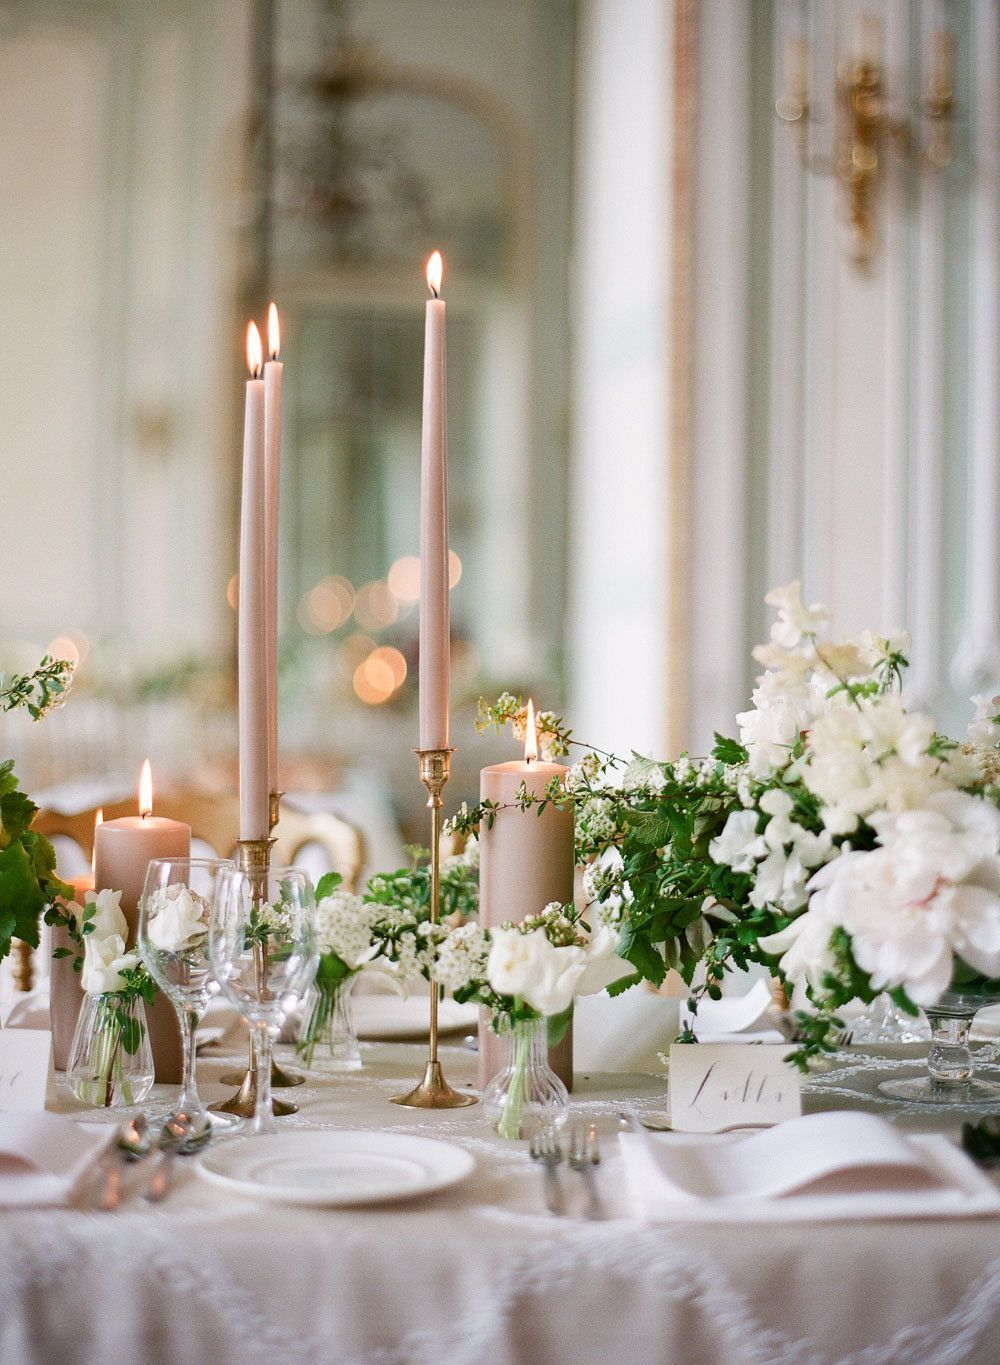 Setting the Table Elements for a Glamorous